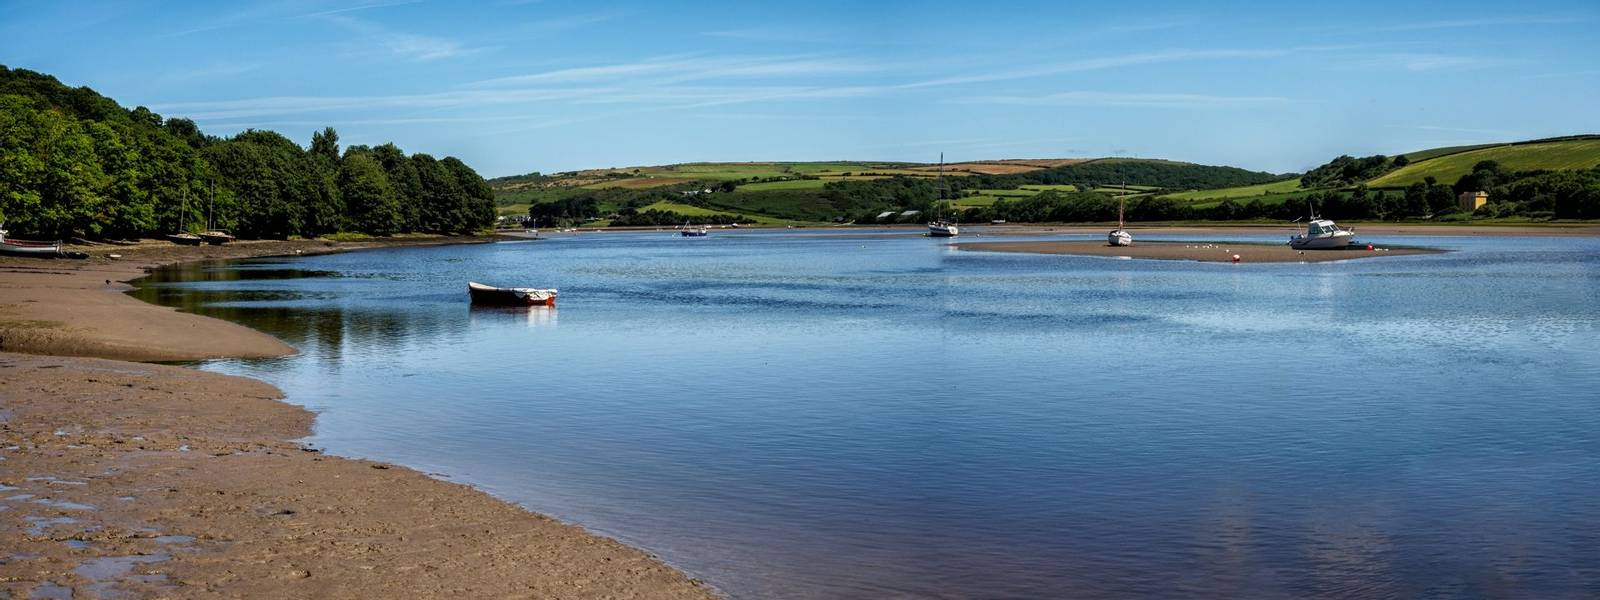 St Dogmaels, Pembrokeshire, Wales  on the estuary of the River Teifi